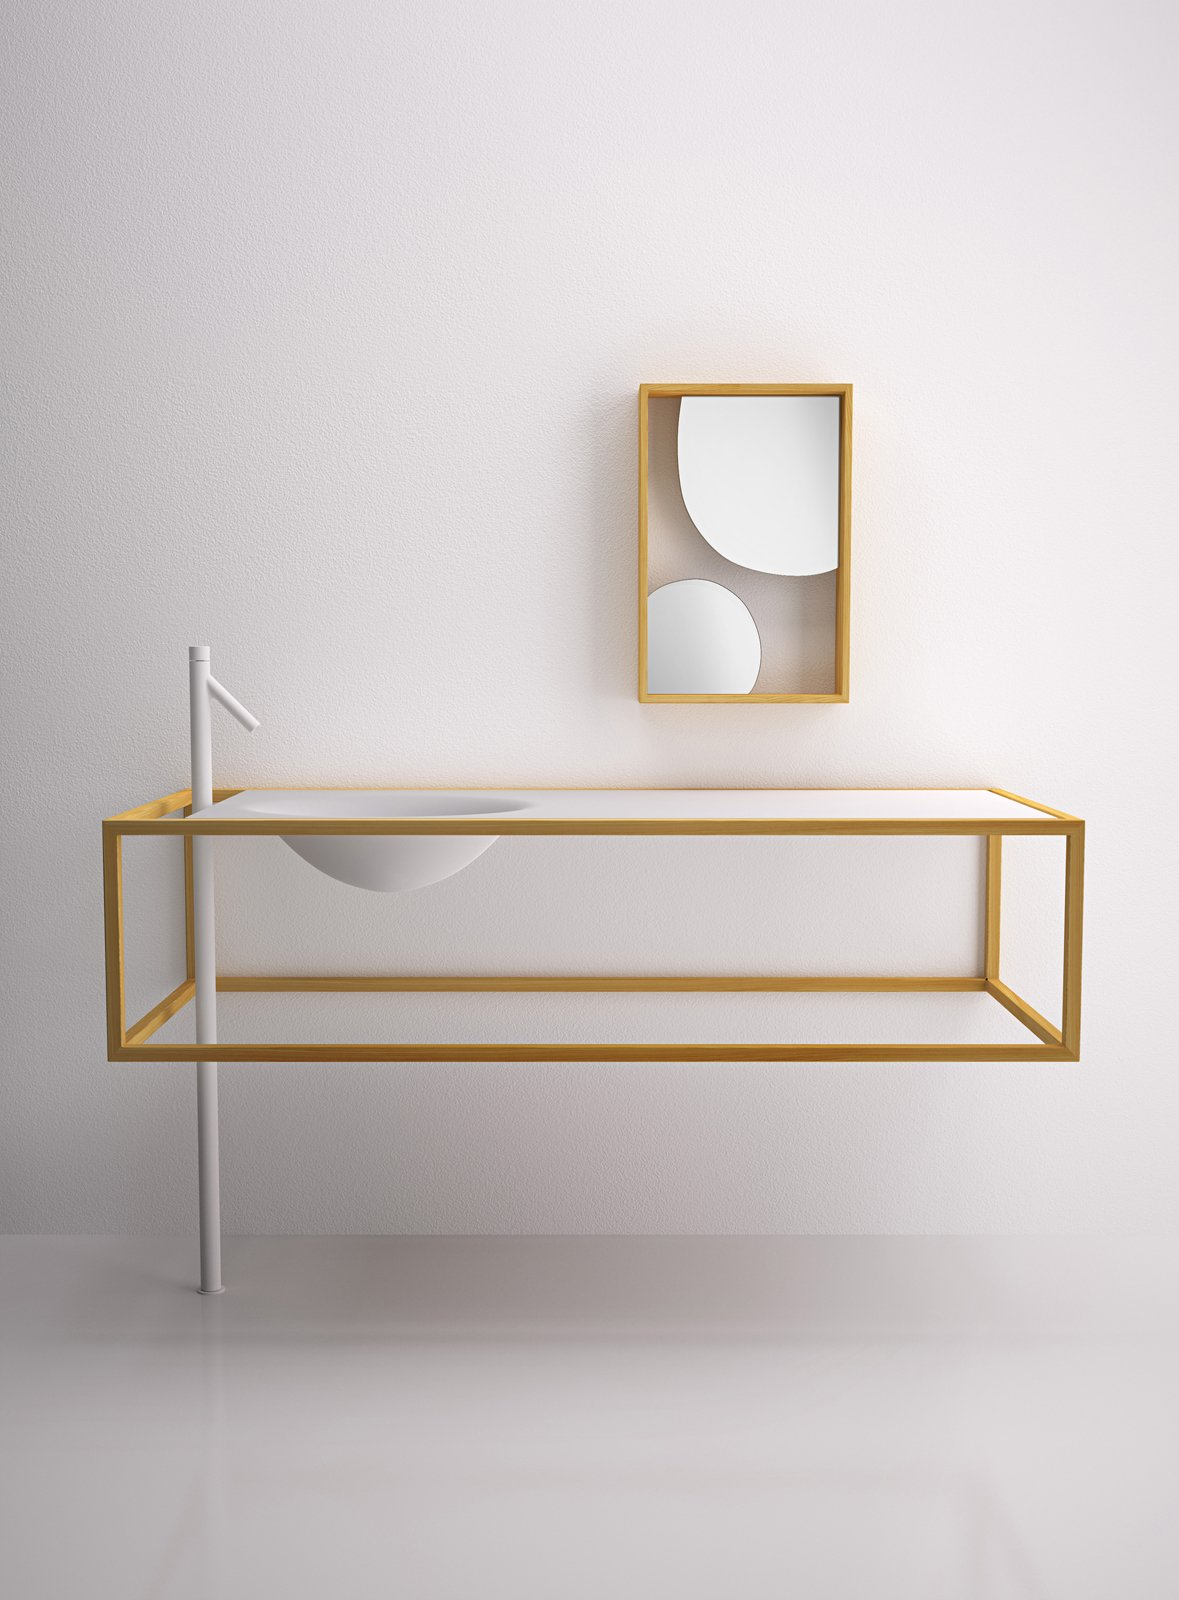 Bath Room and Drop In Sink Counter and sink (€6,800), mirror (€680)  Photo 8 of 9 in 7 Stylish Bathroom Sinks That Can Fit in Even the Tiniest of Spaces from Nendo for Bisazza Bagno